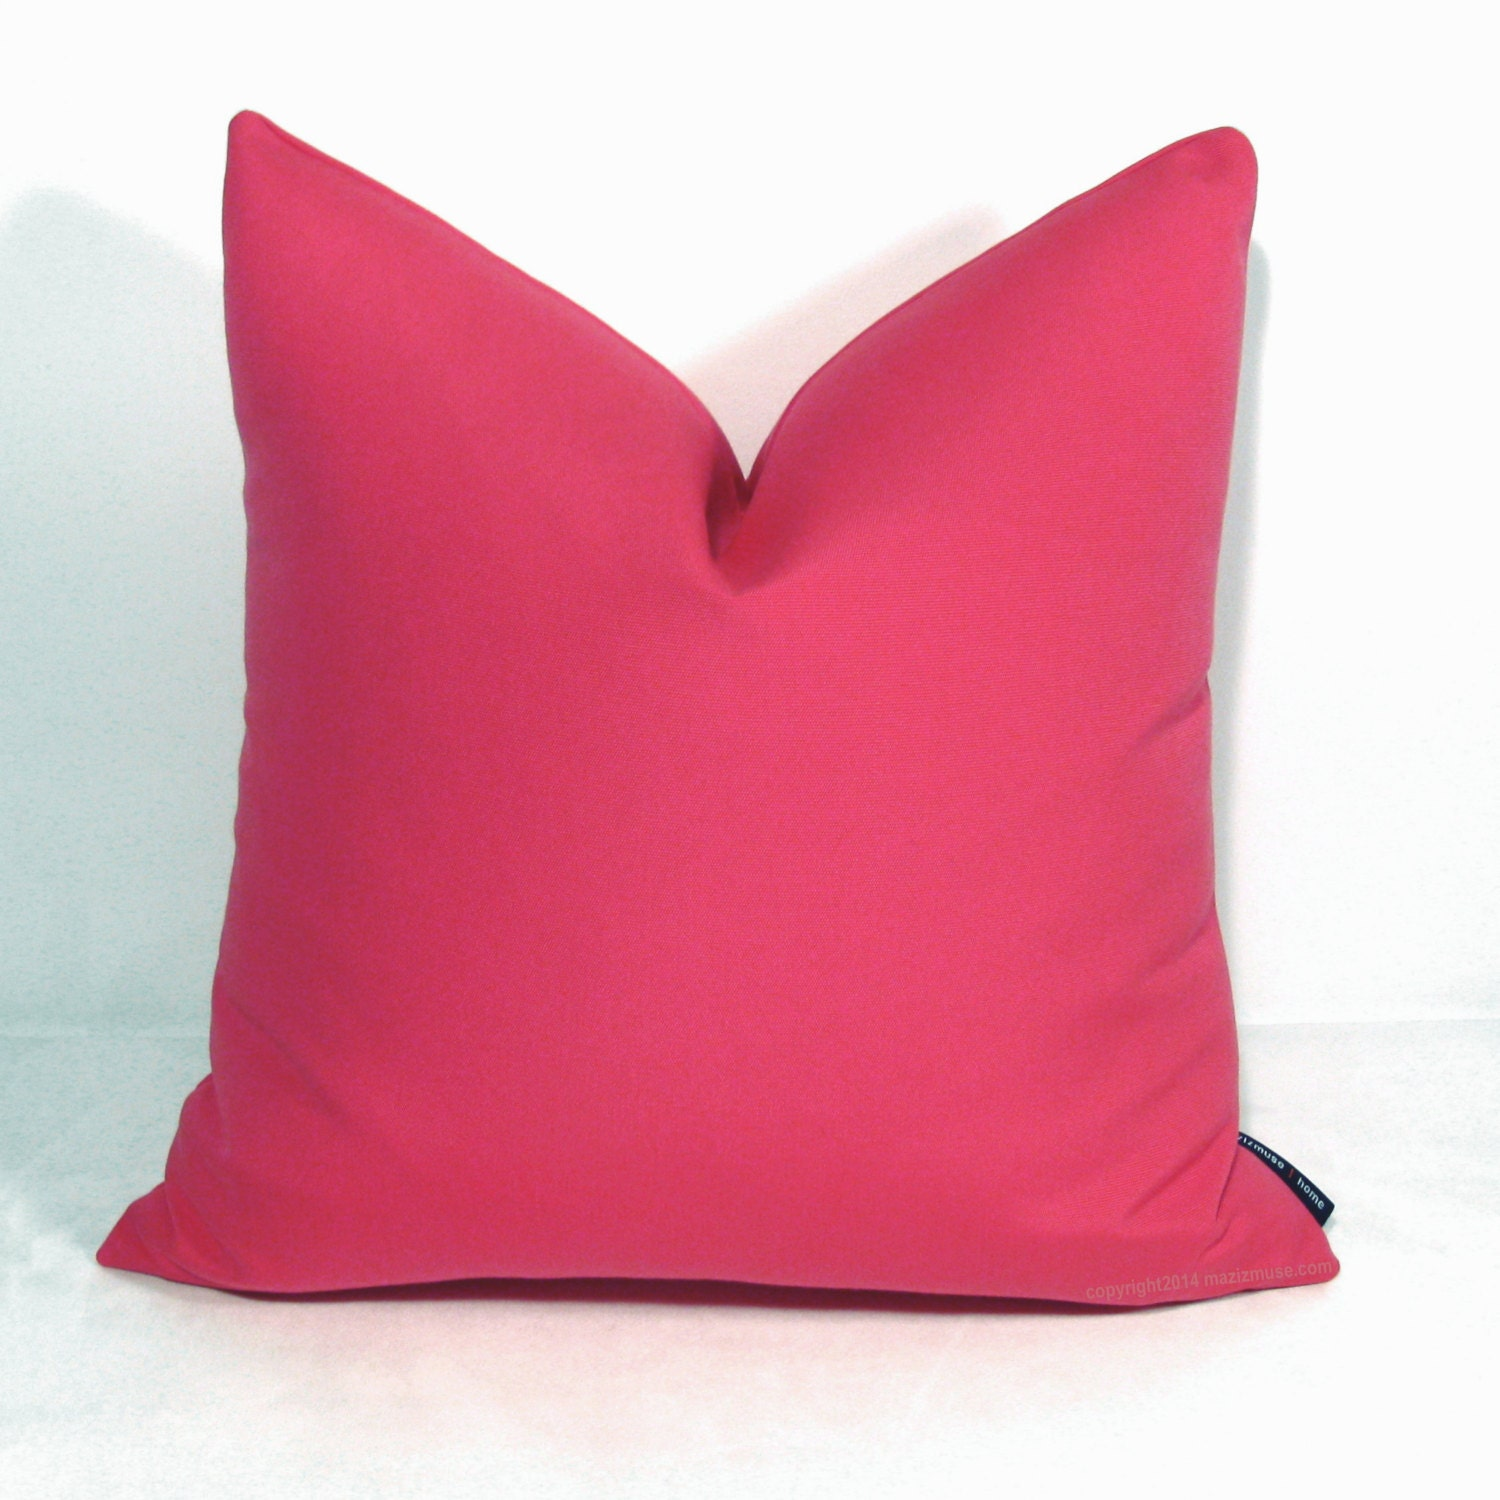 Hot Pink Outdoor Throw Pillows : Hot Pink Outdoor Pillow Cover Decorative Throw Pillow Case